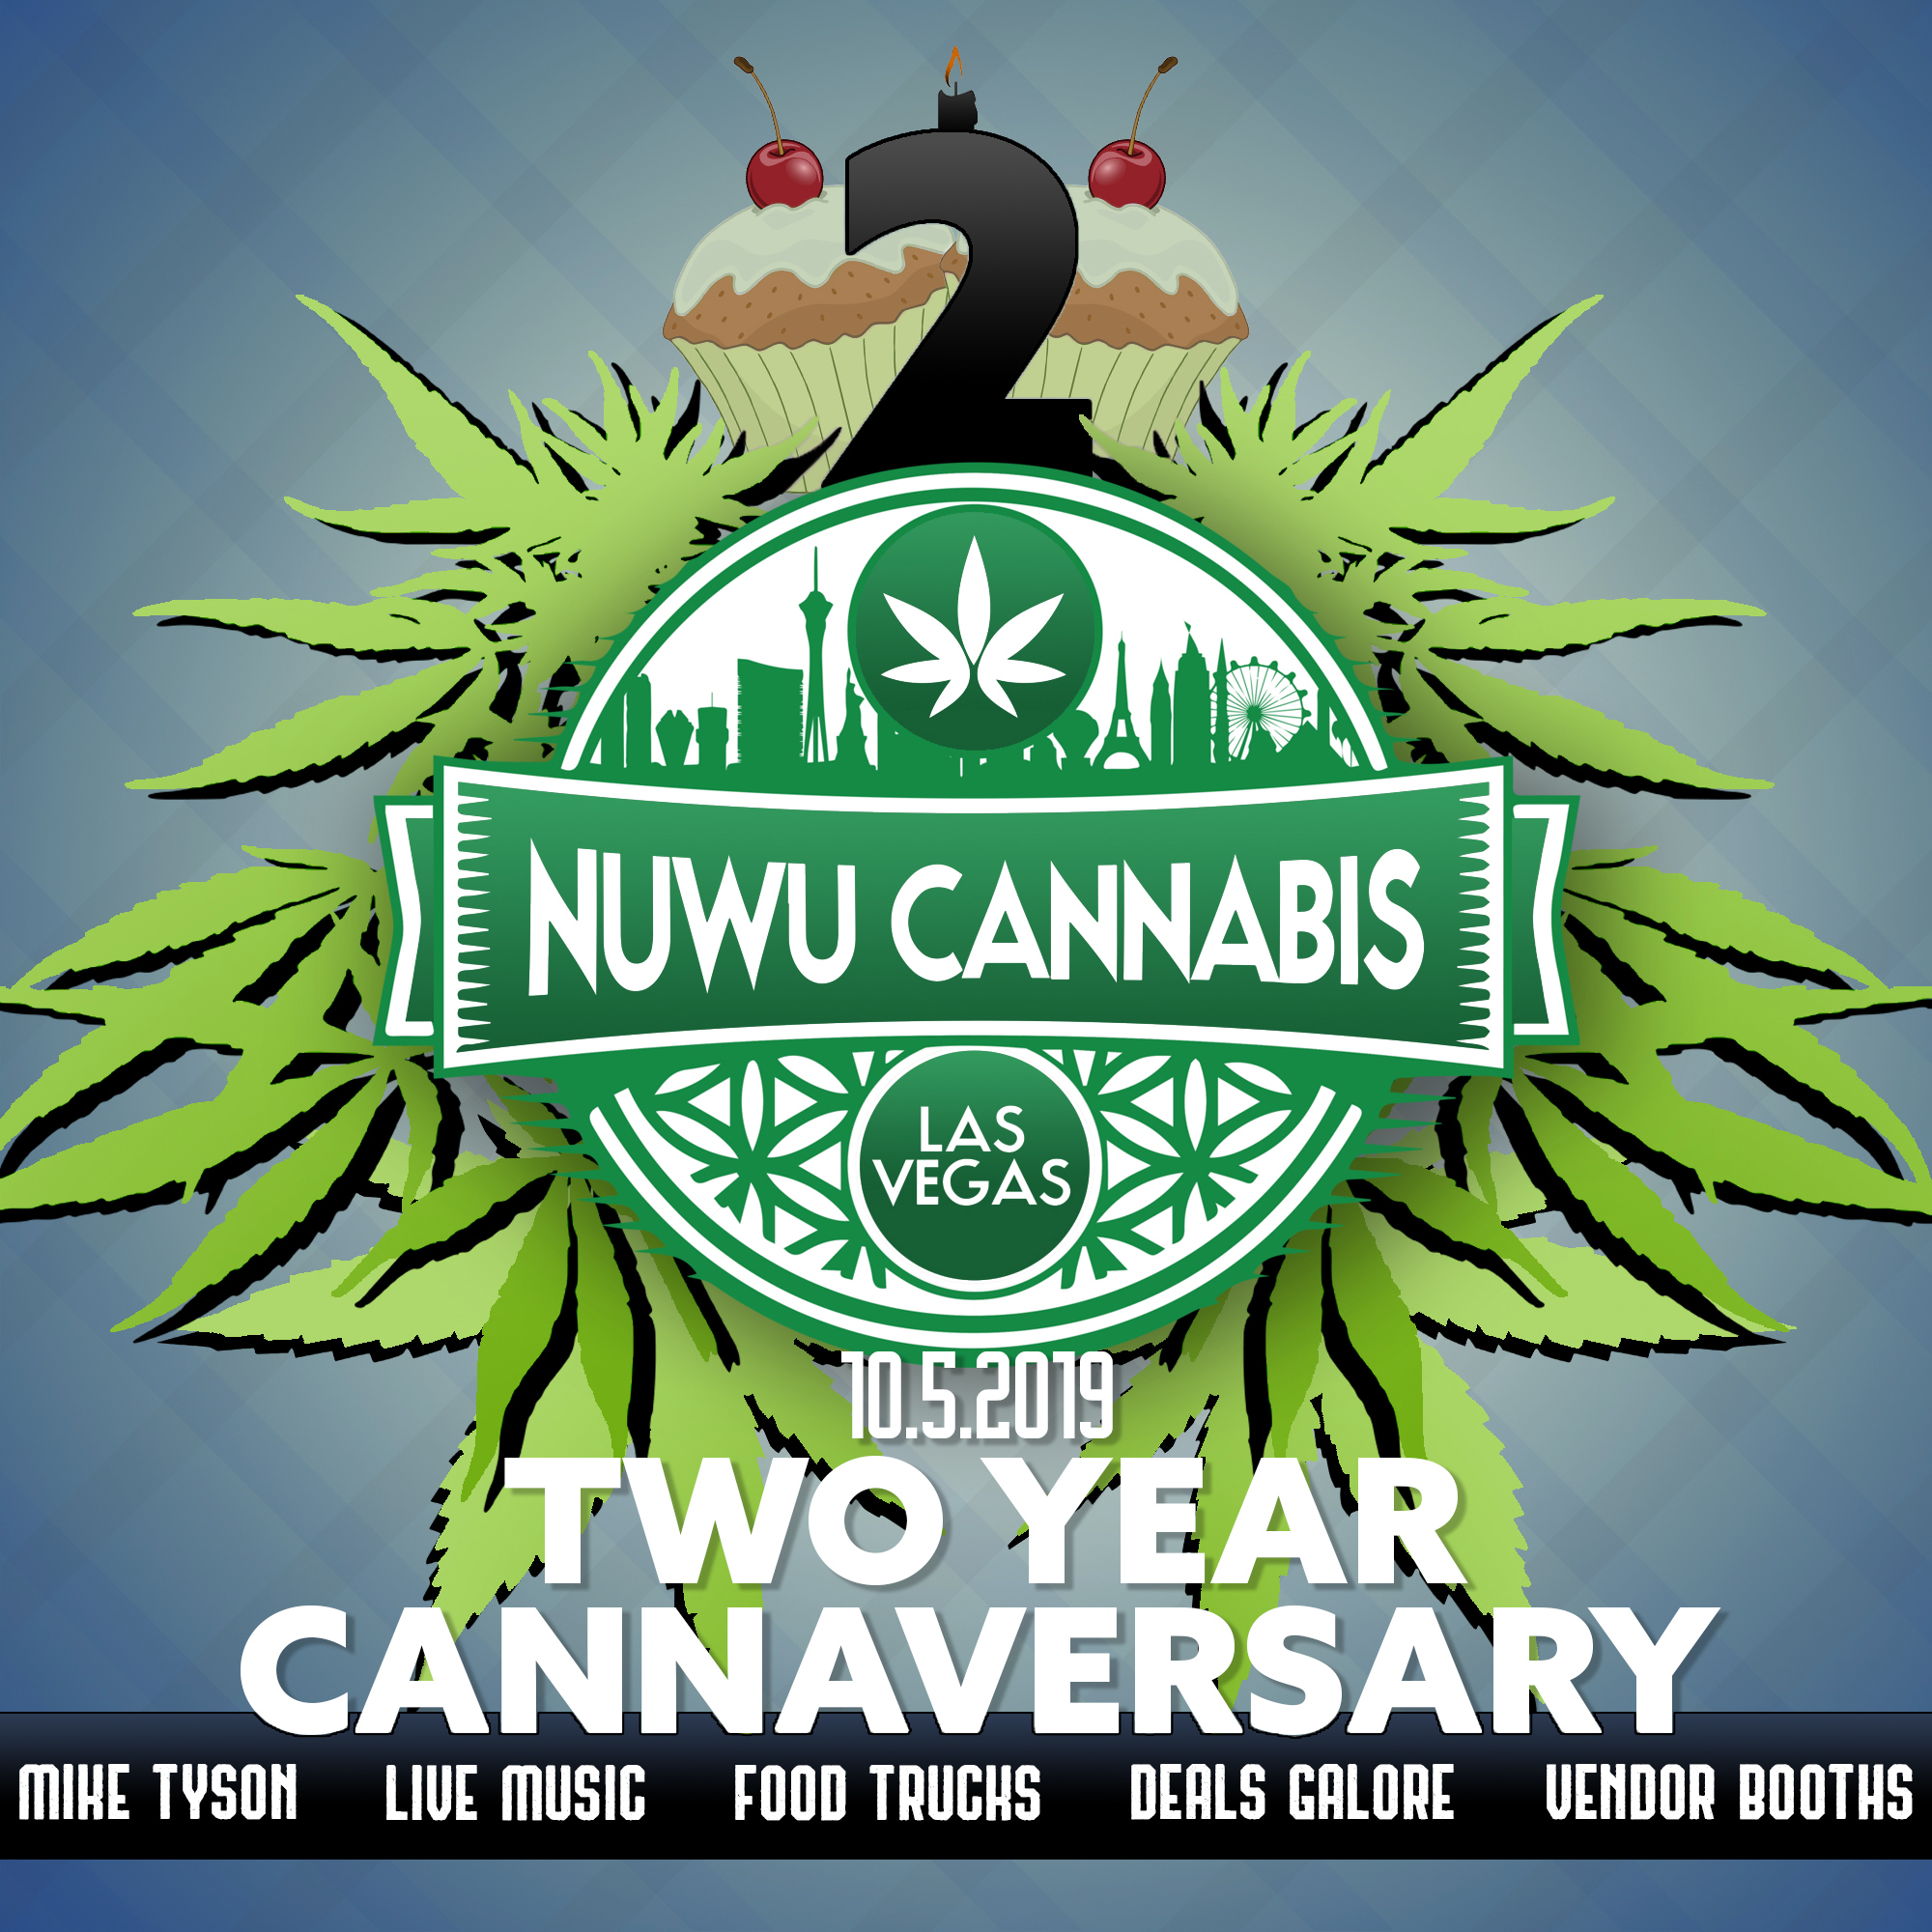 Cannaversary CelebrationUPDATE.jpg